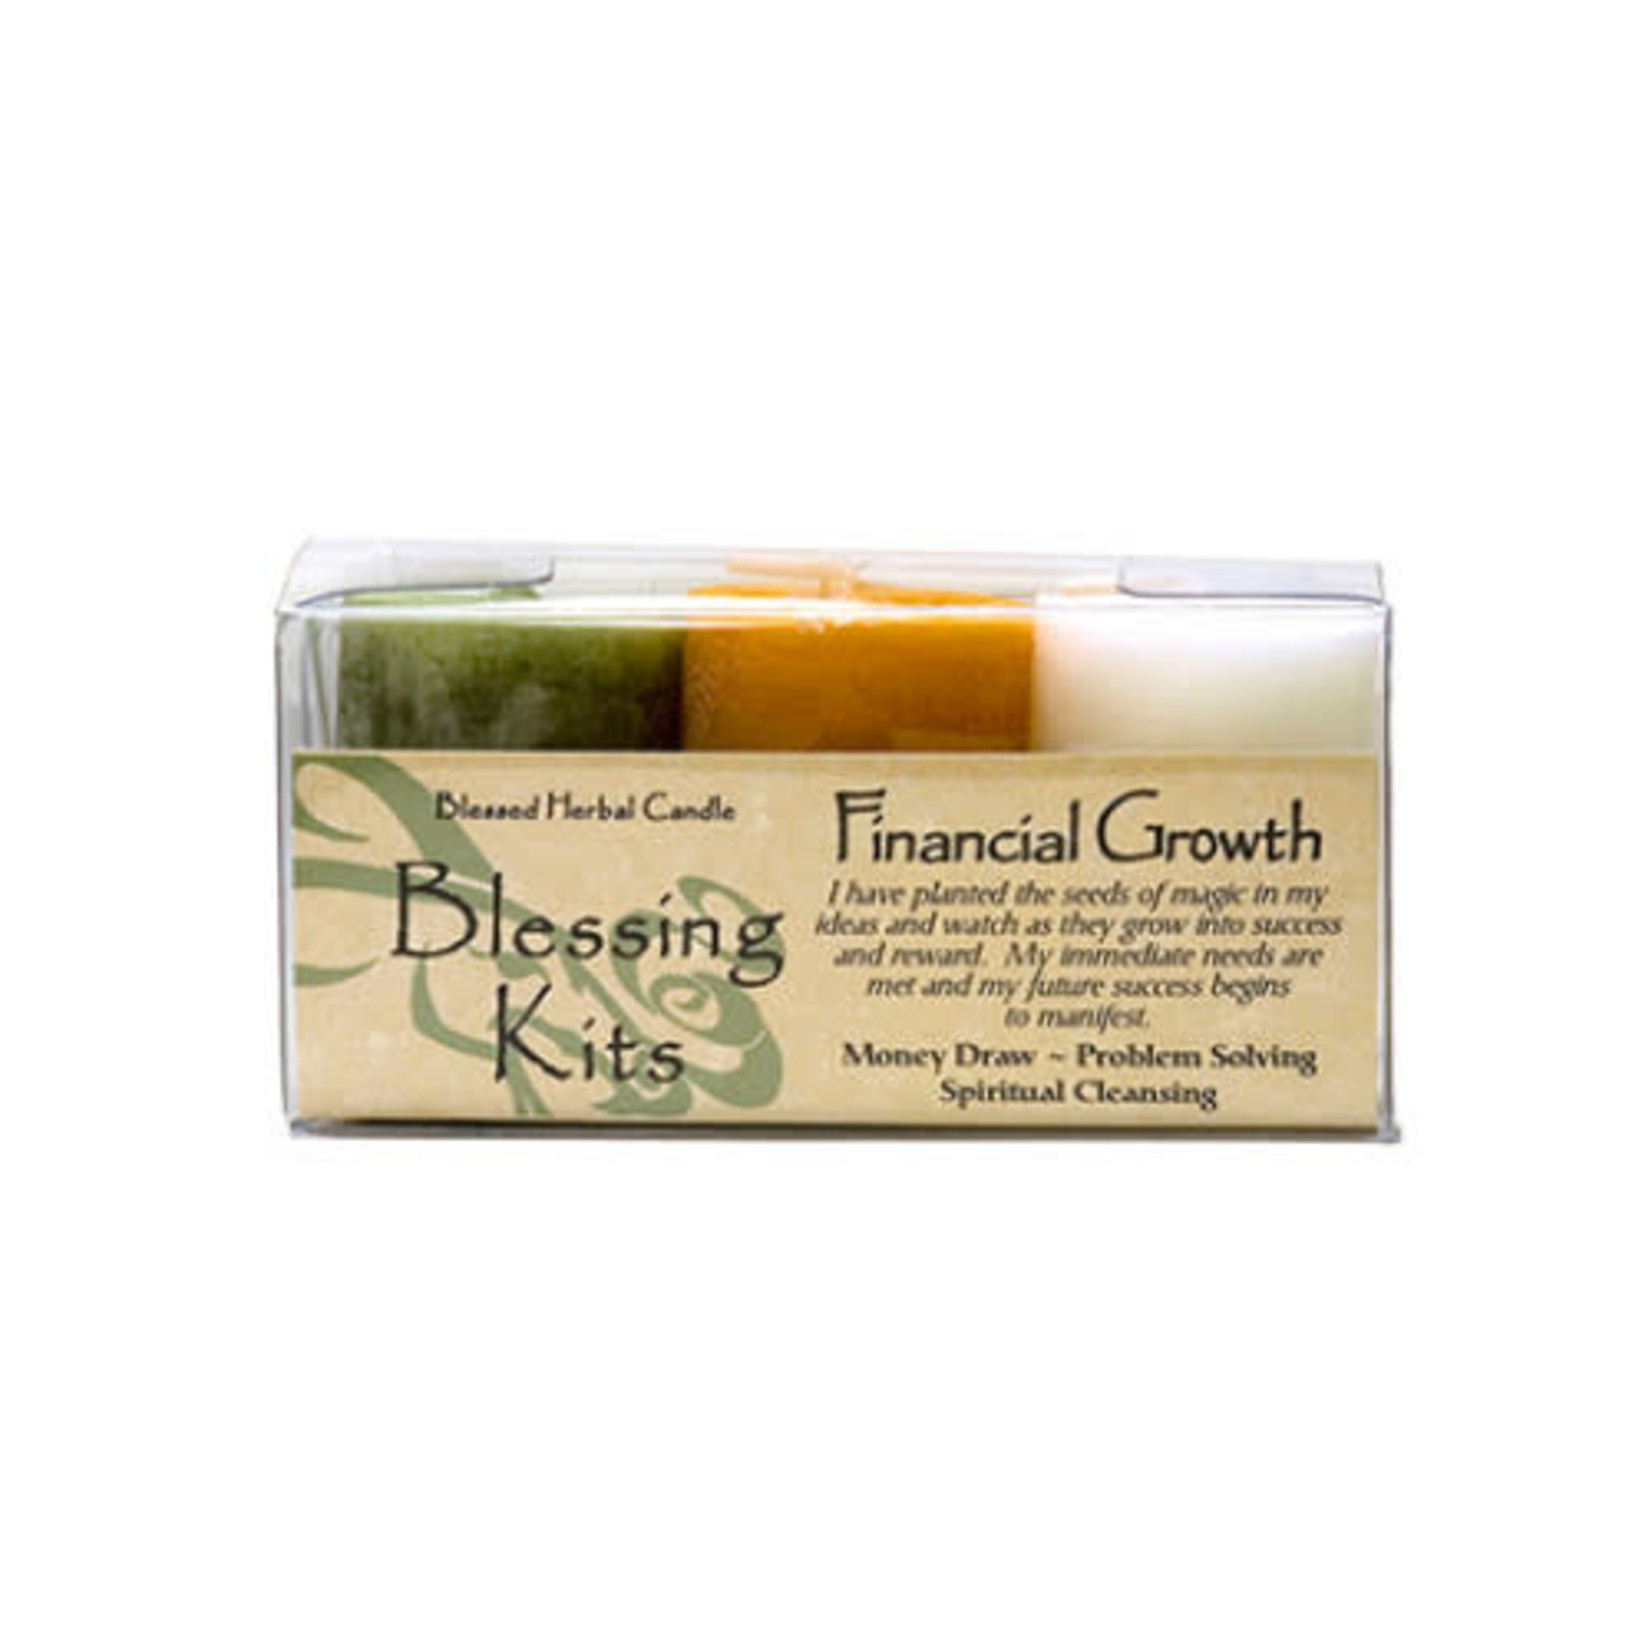 Blessed Kit Financial Growth Candle Kit